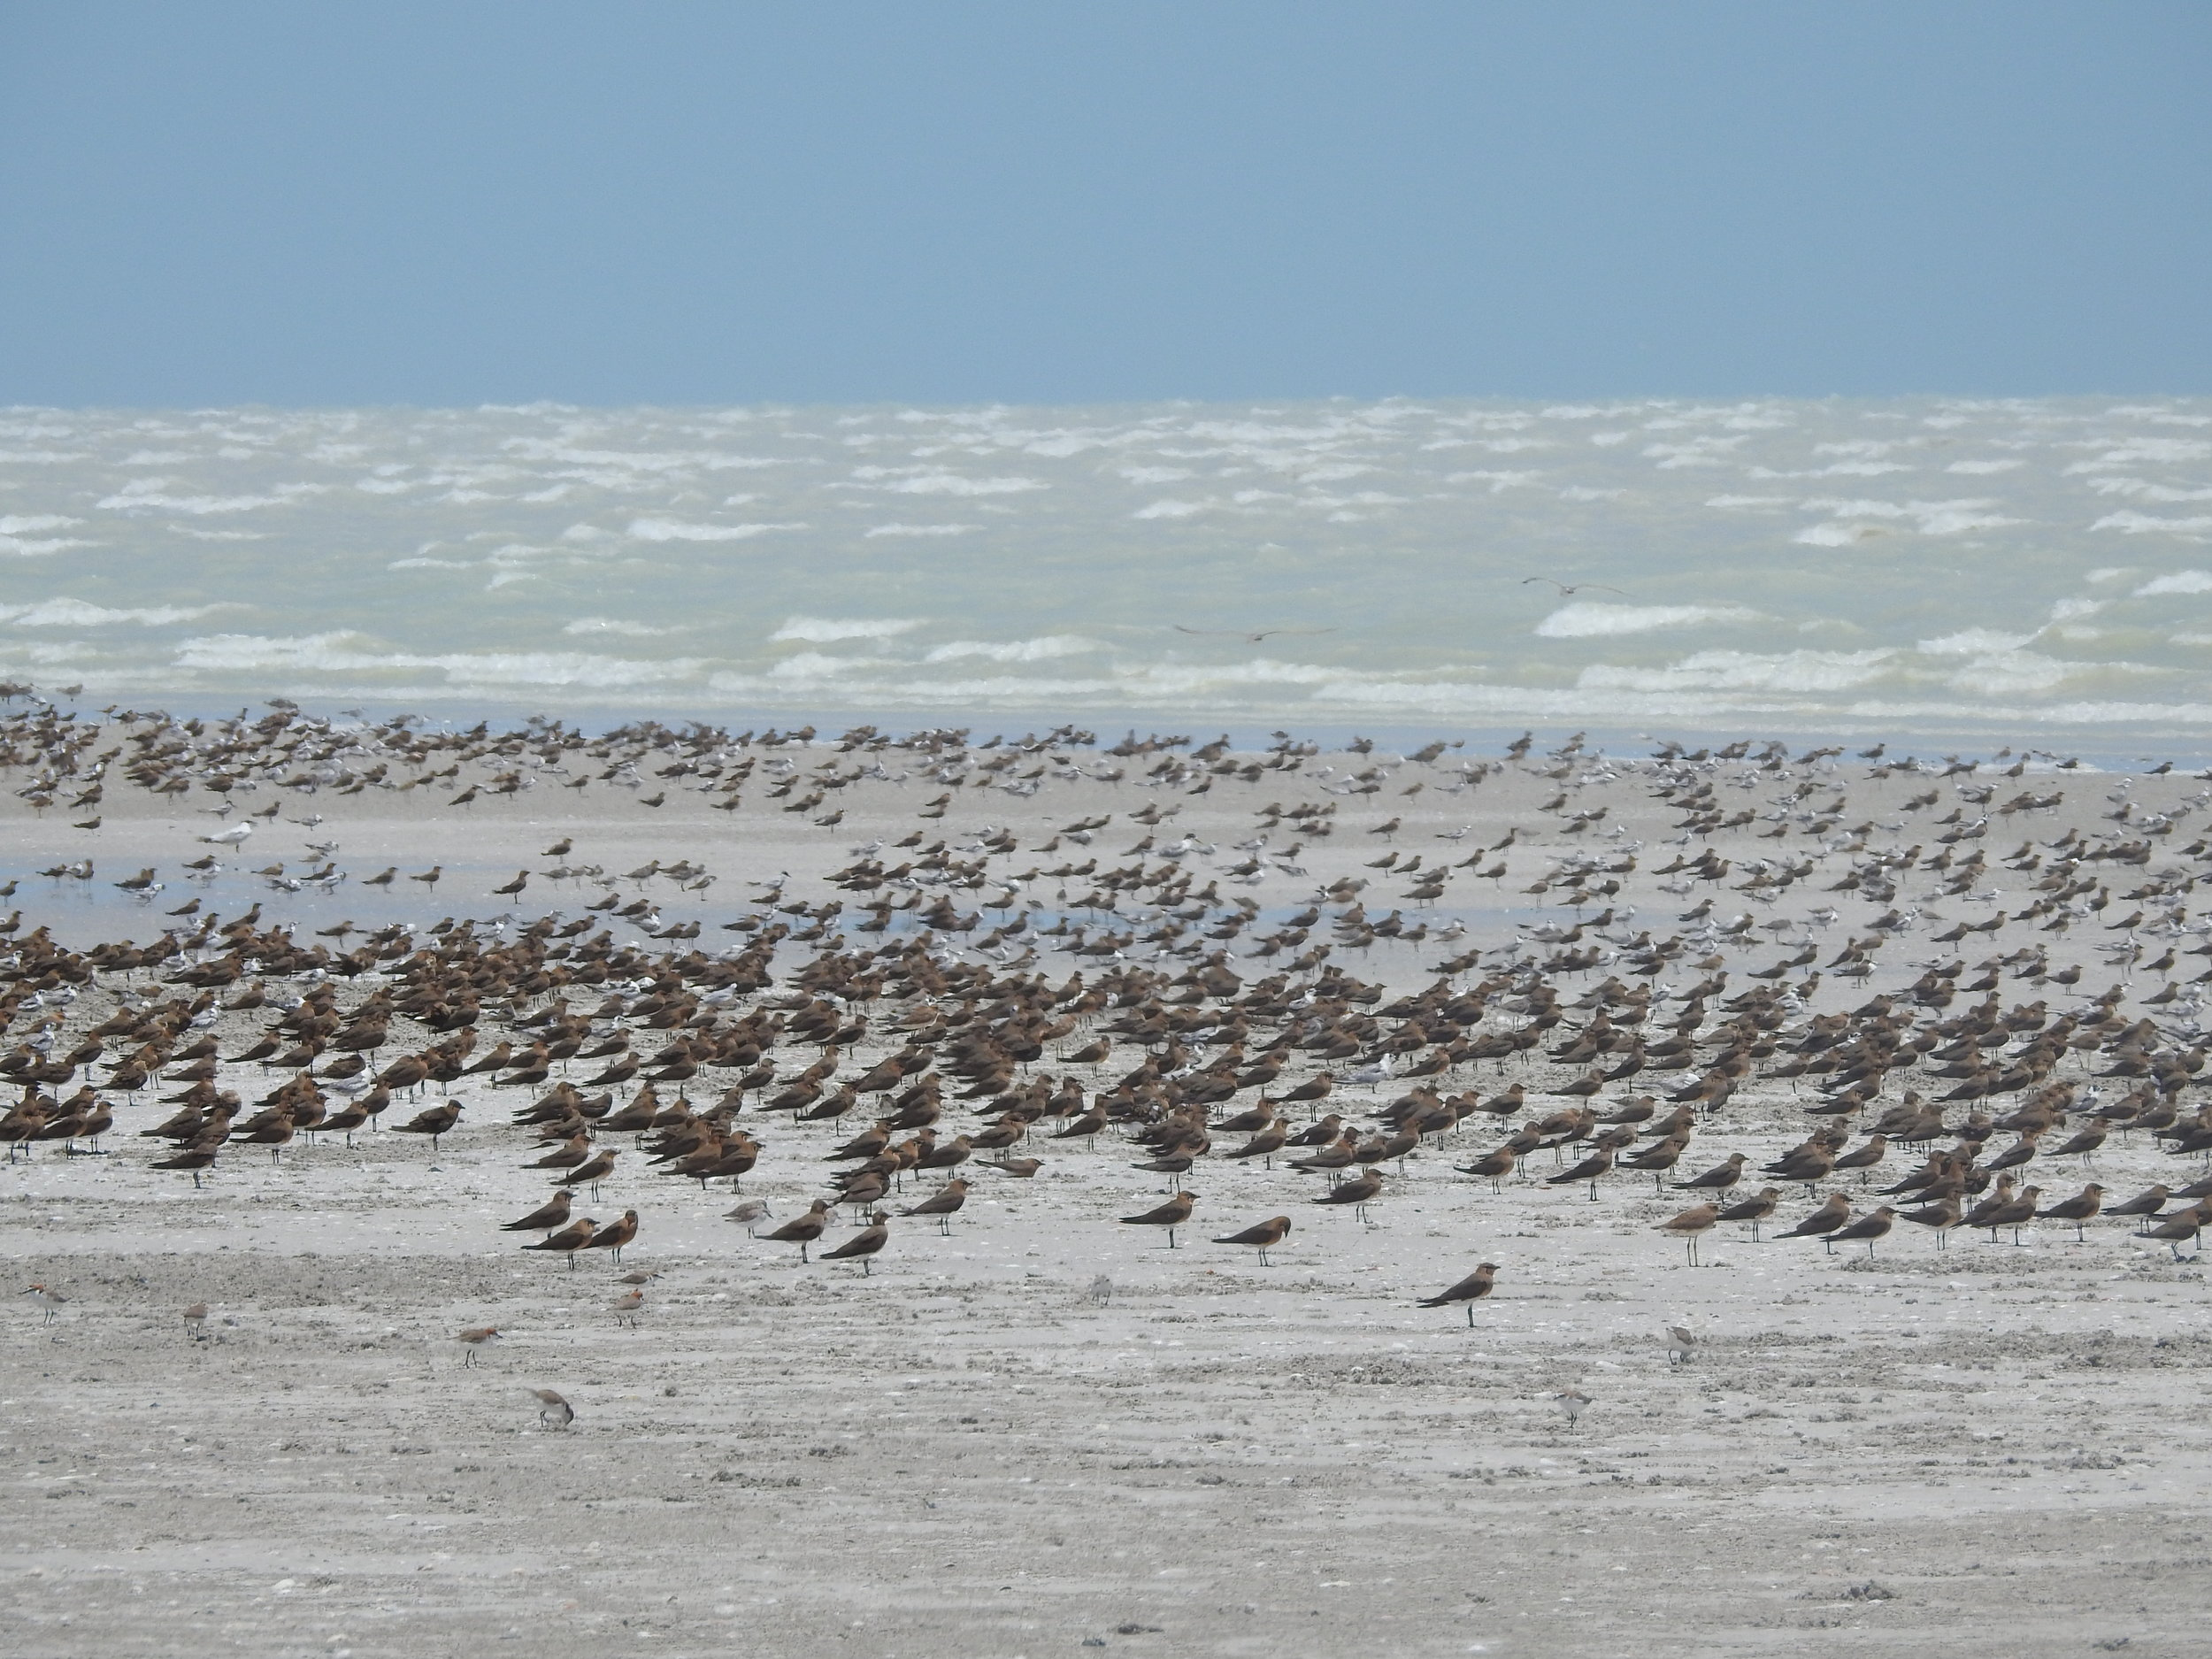 Oriental Pratincoles, other shorebirds and terns on Eighty Mile Beach. This just keeps on going, and the beach is even longer than its name suggests.